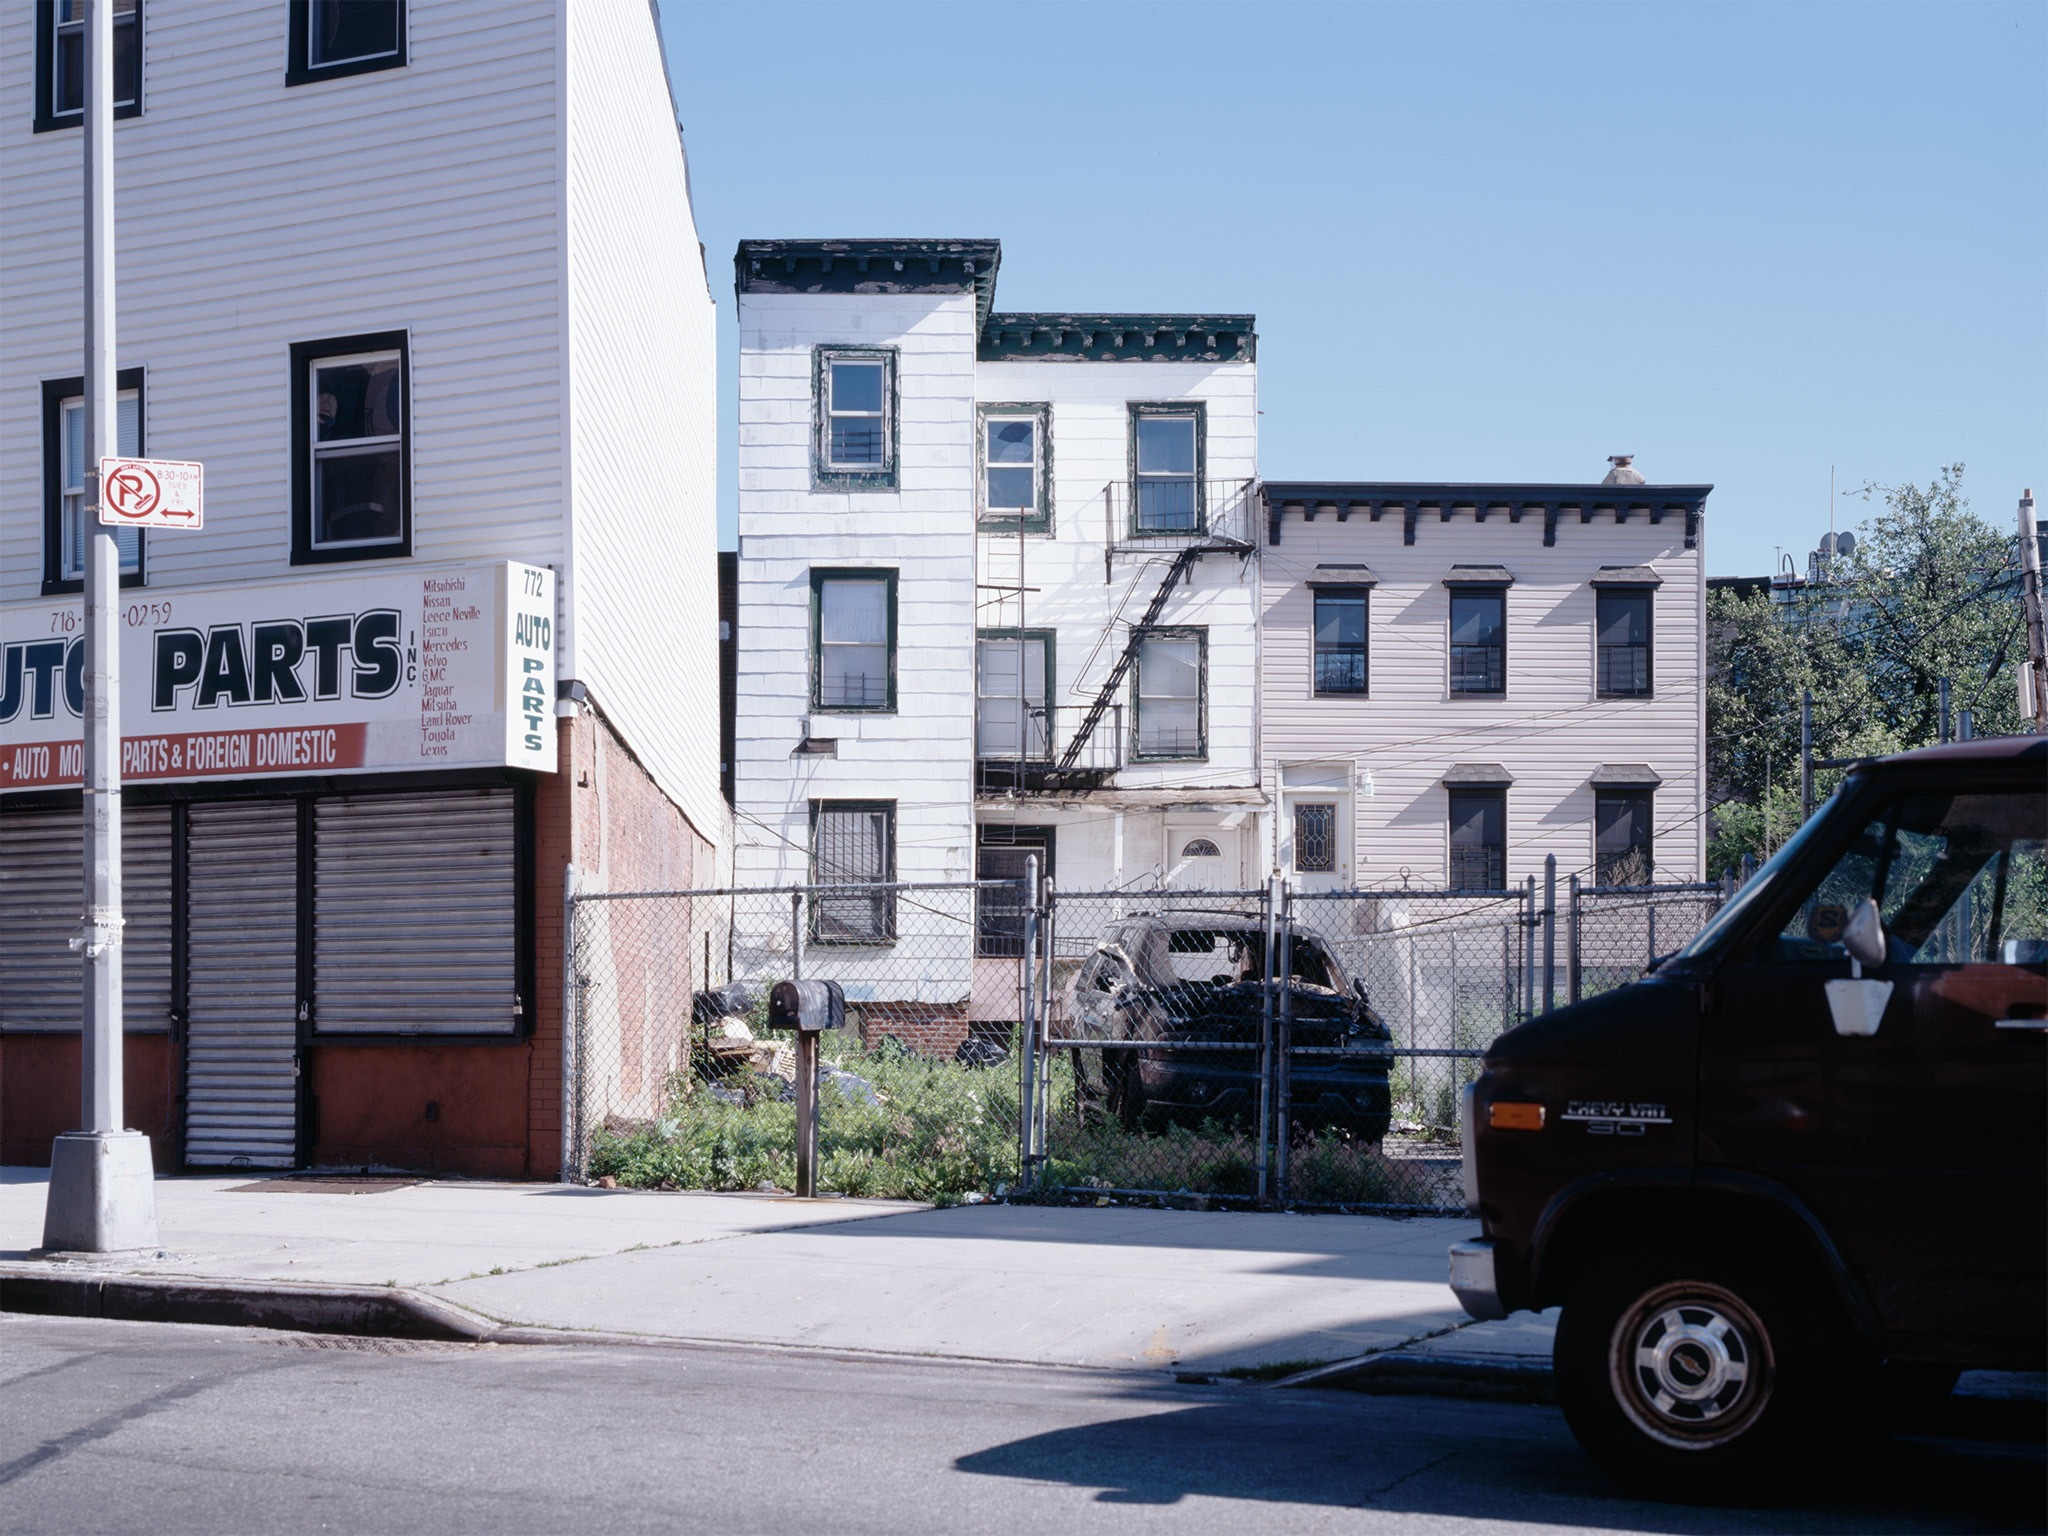 Set back   Prospect Heights 2006   Dean Street between Washington Ave. and Underhill Ave.  40.679527, -73.964668